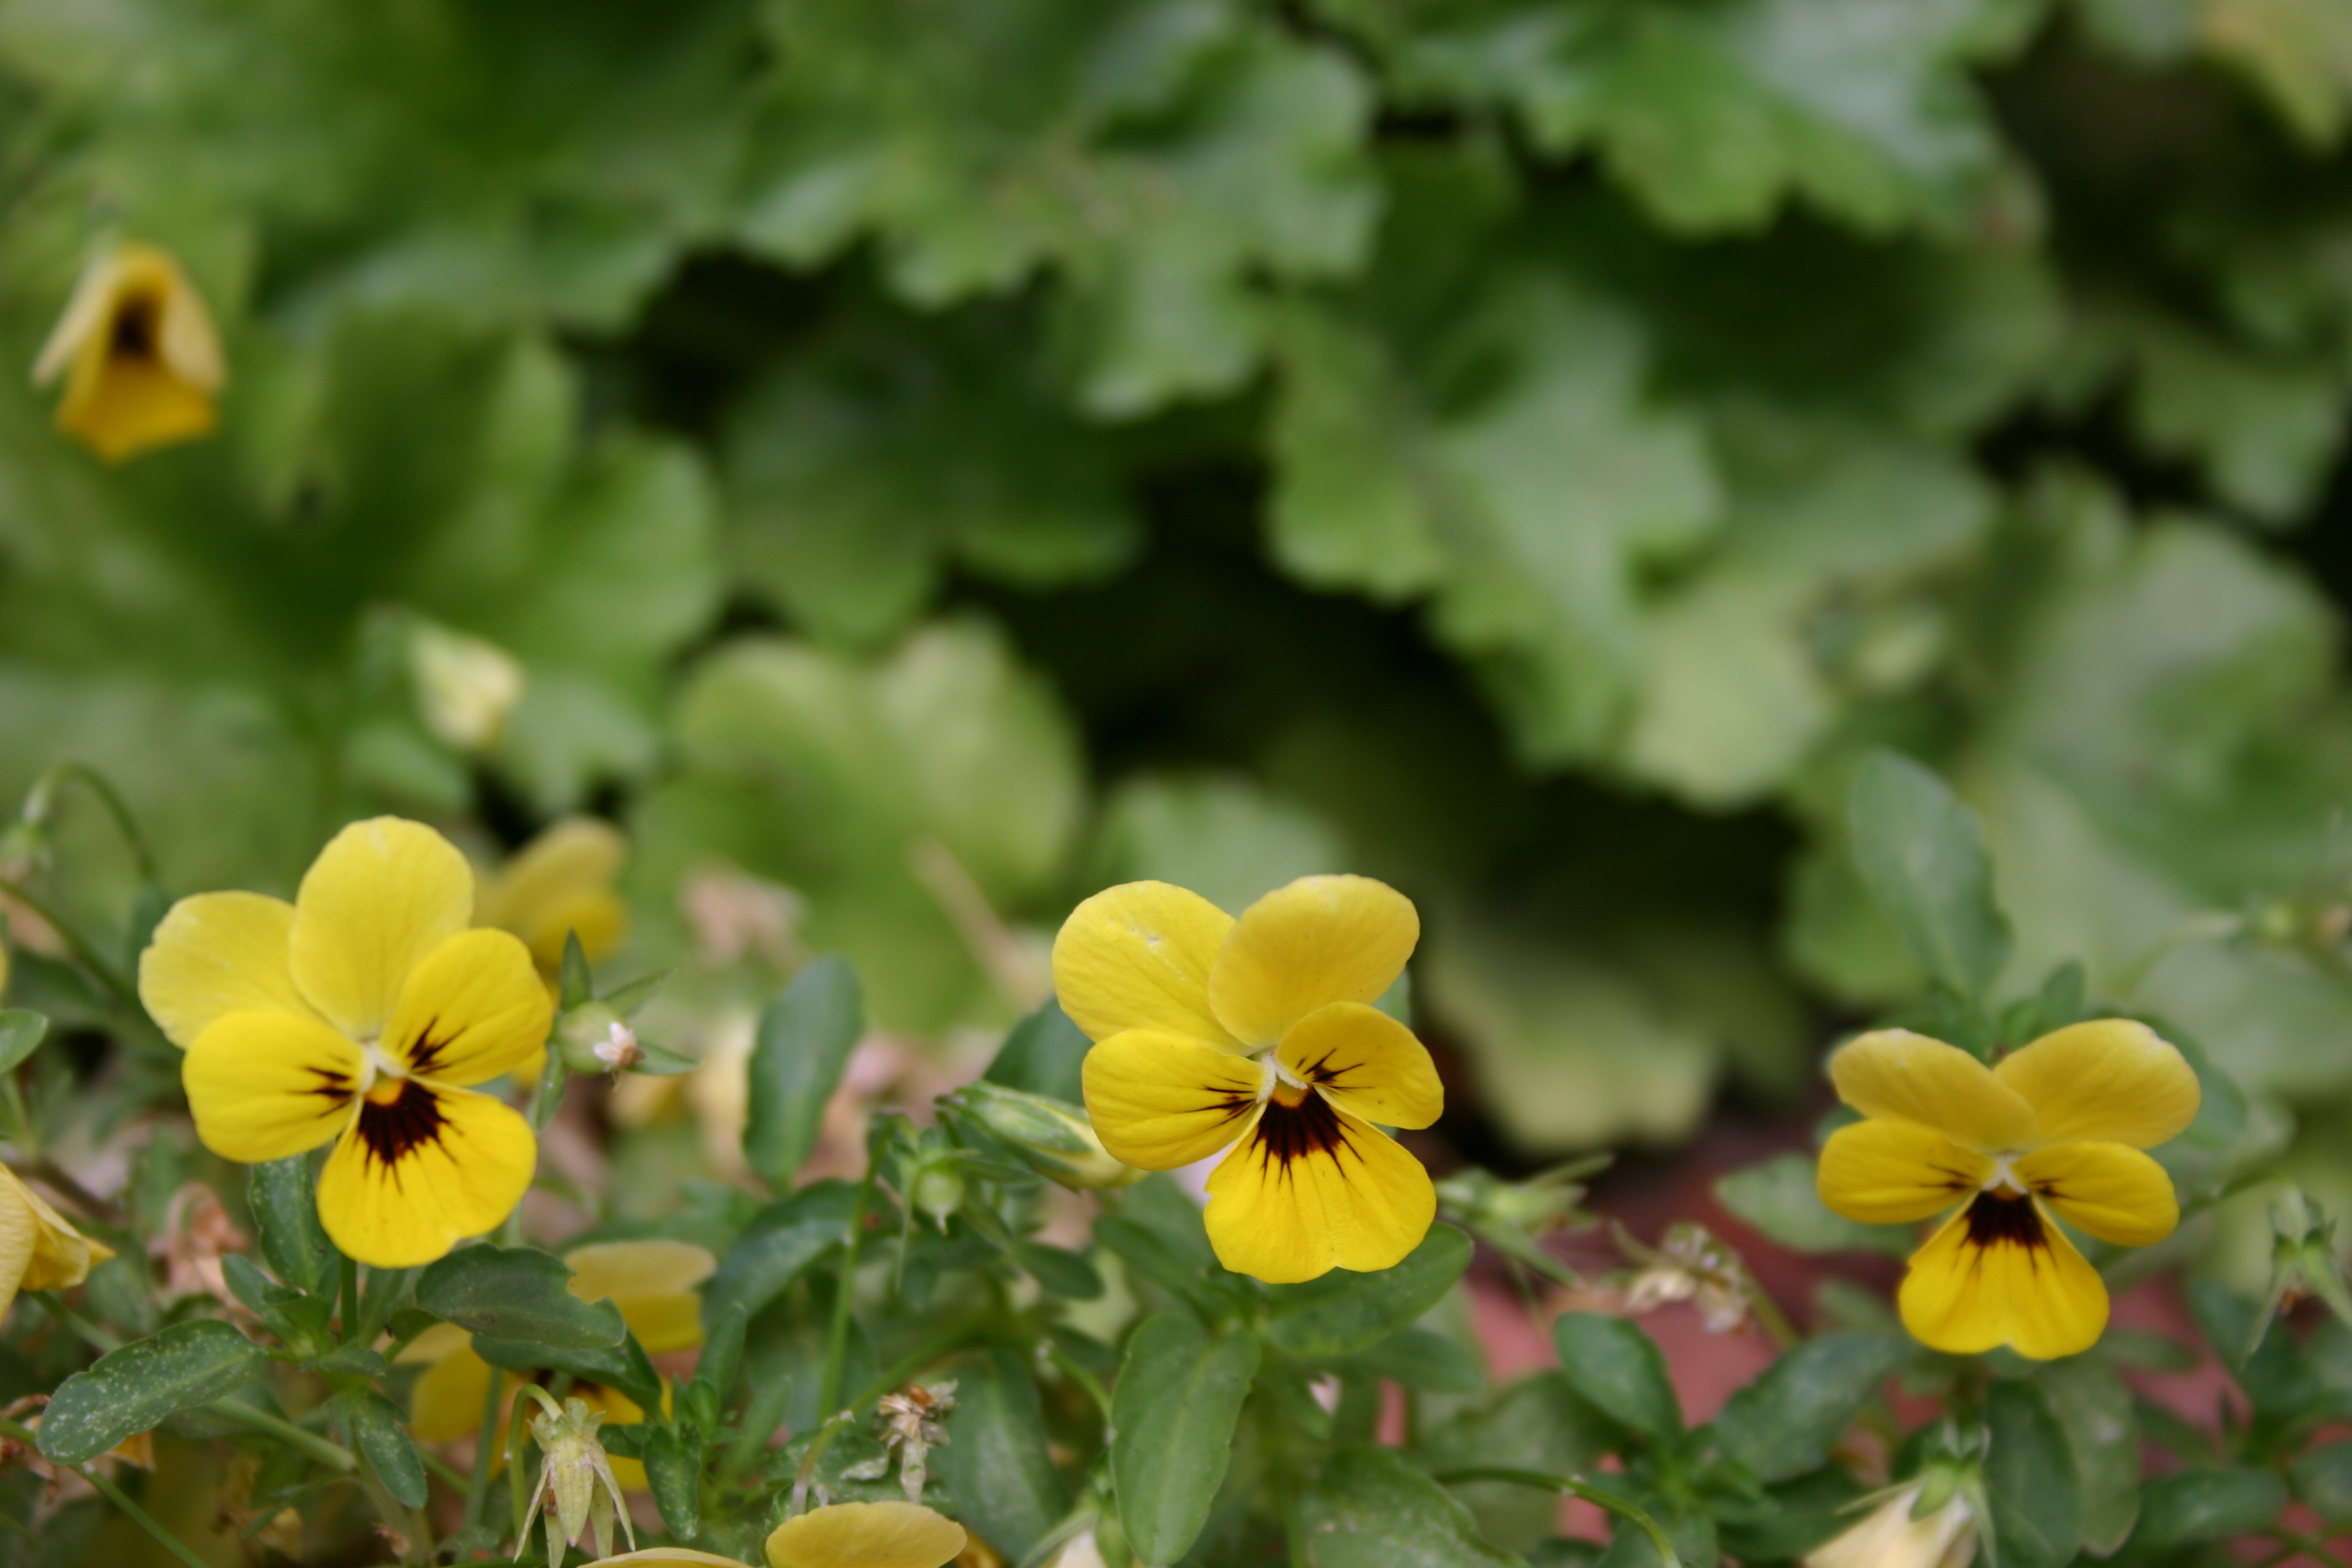 Yellow pansies in front of a green leafy background.